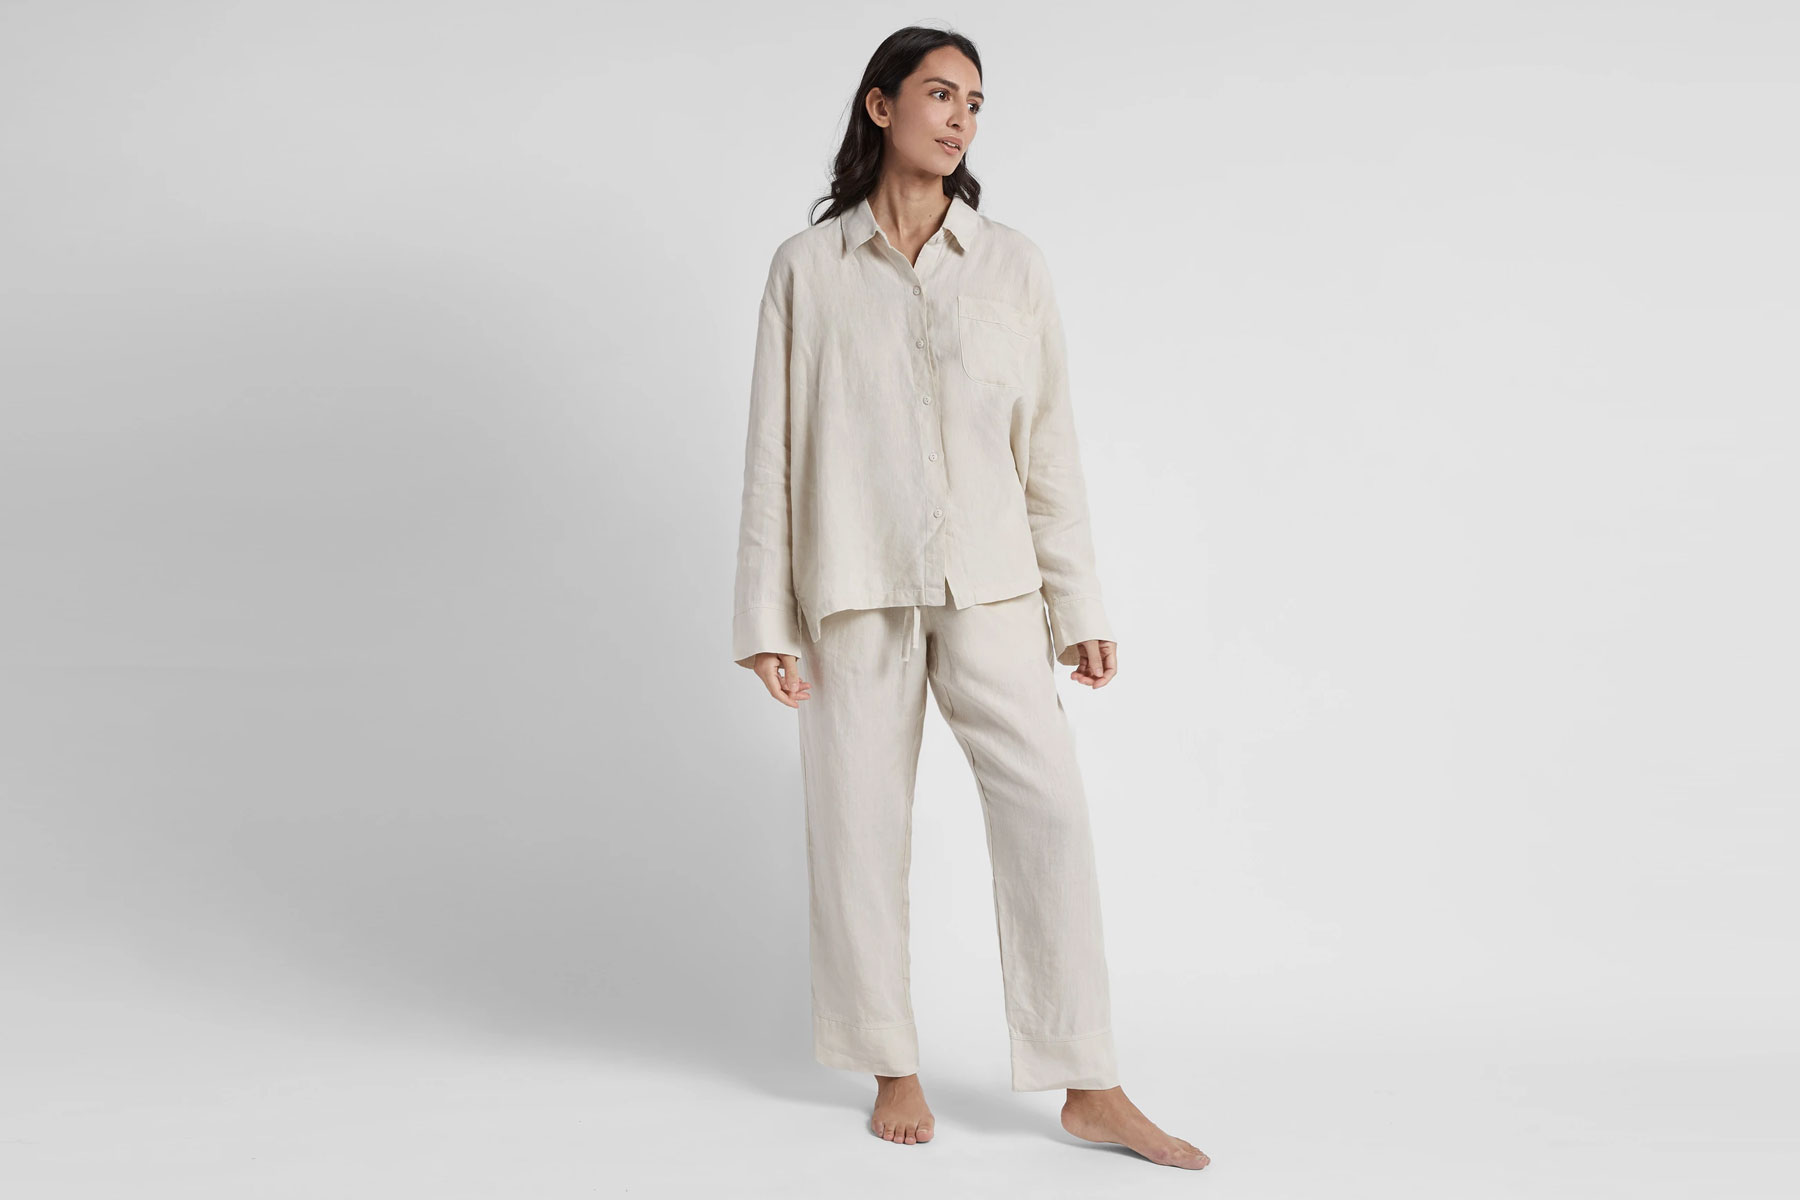 Woman wearing linen shirt and pants